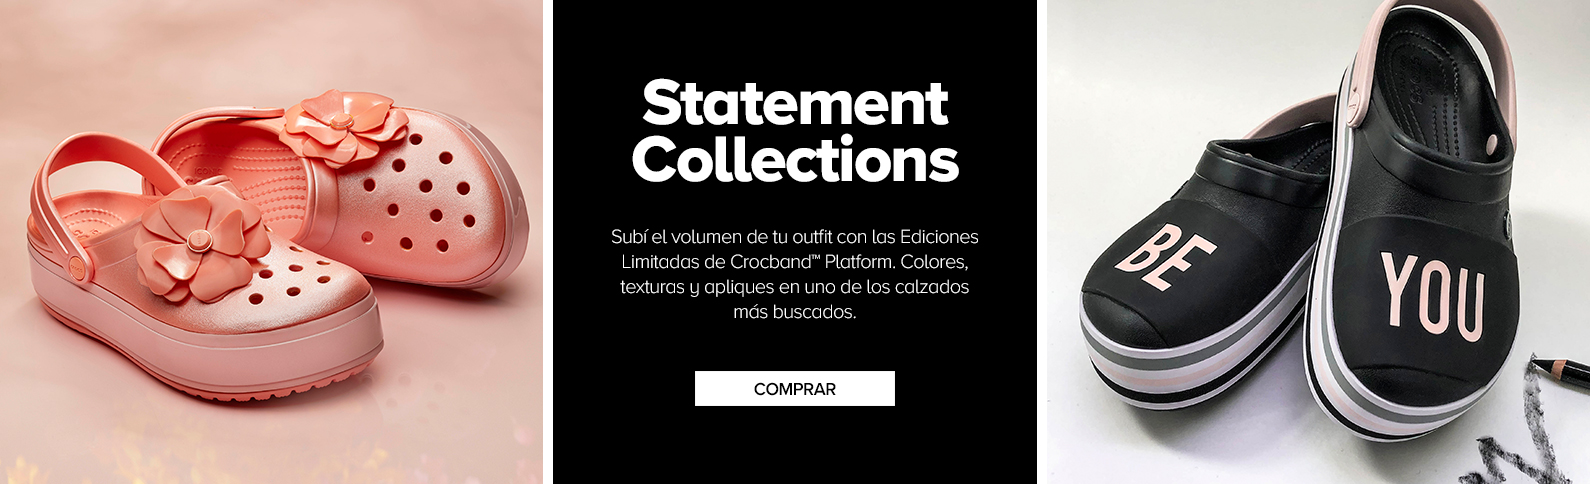 Statement Collections